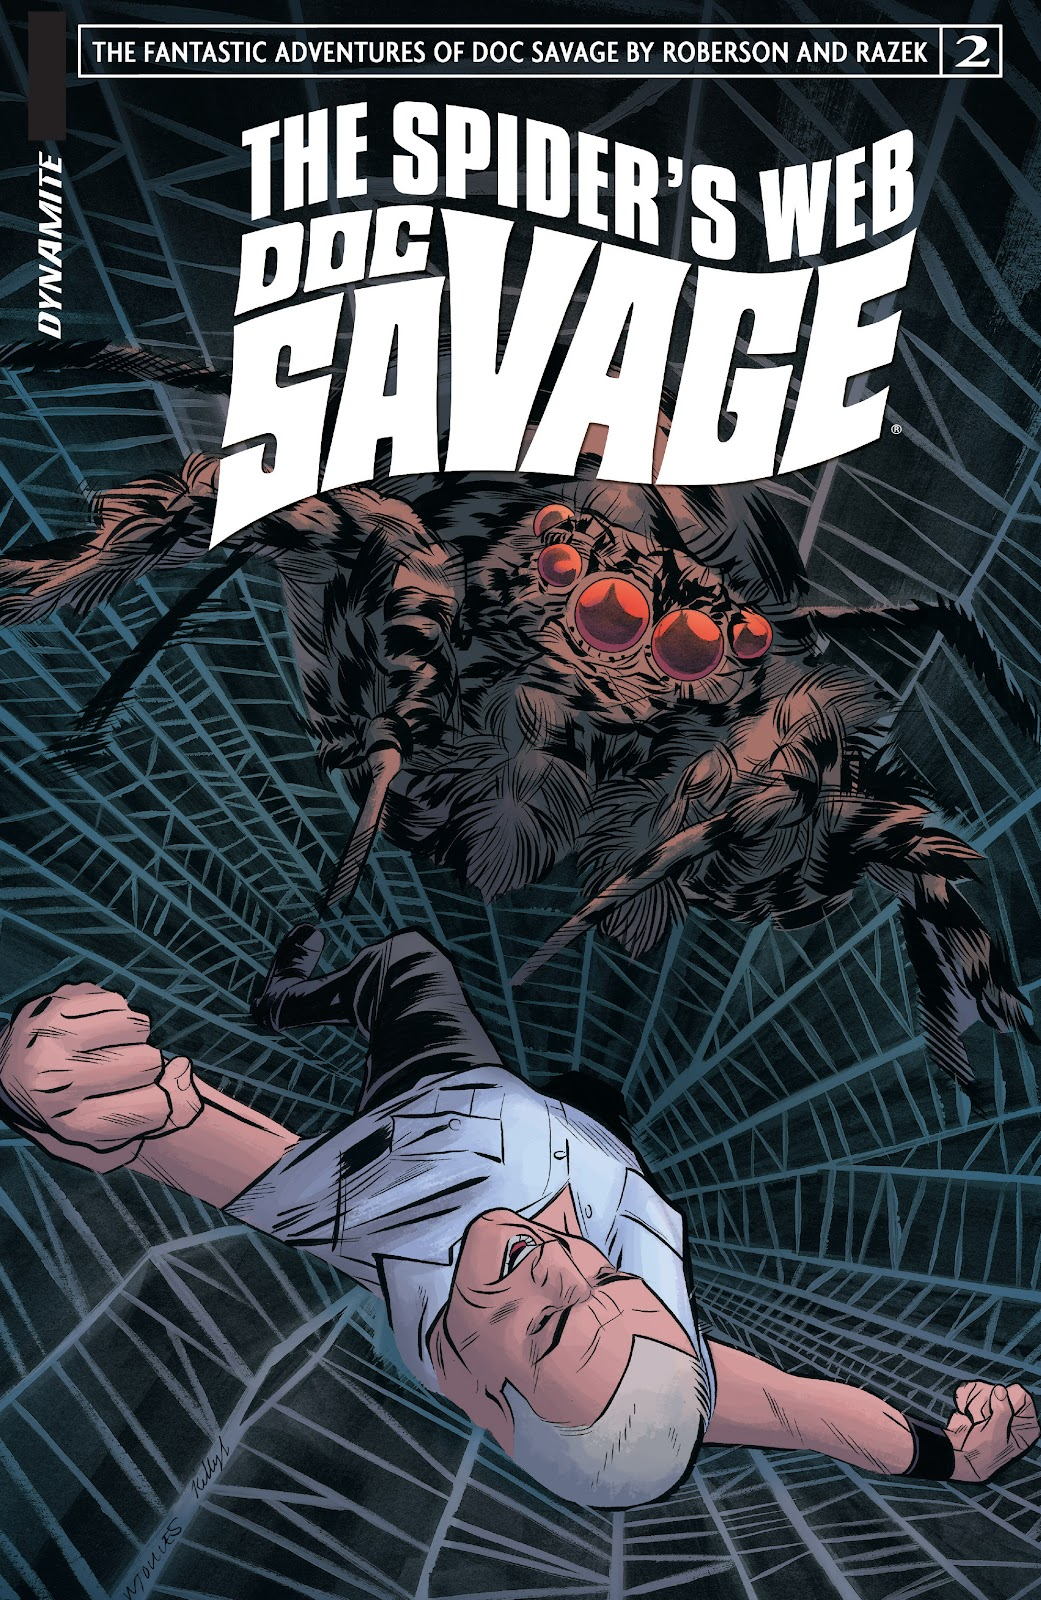 Doc Savage: The Spiders Web issue 2 - Page 1